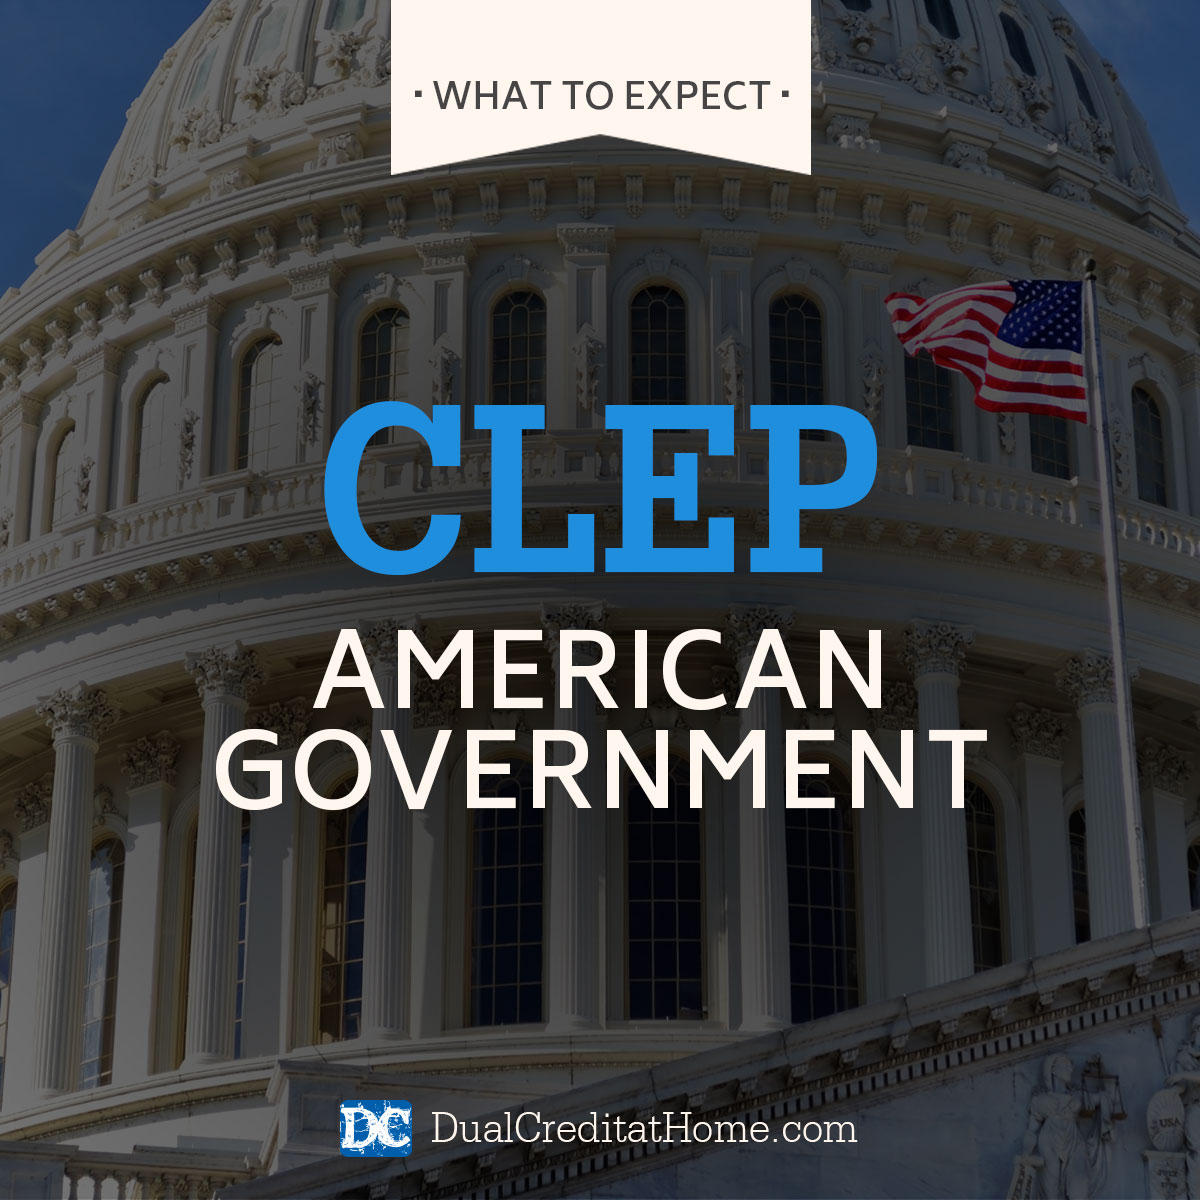 American Government CLEP: What to Expect